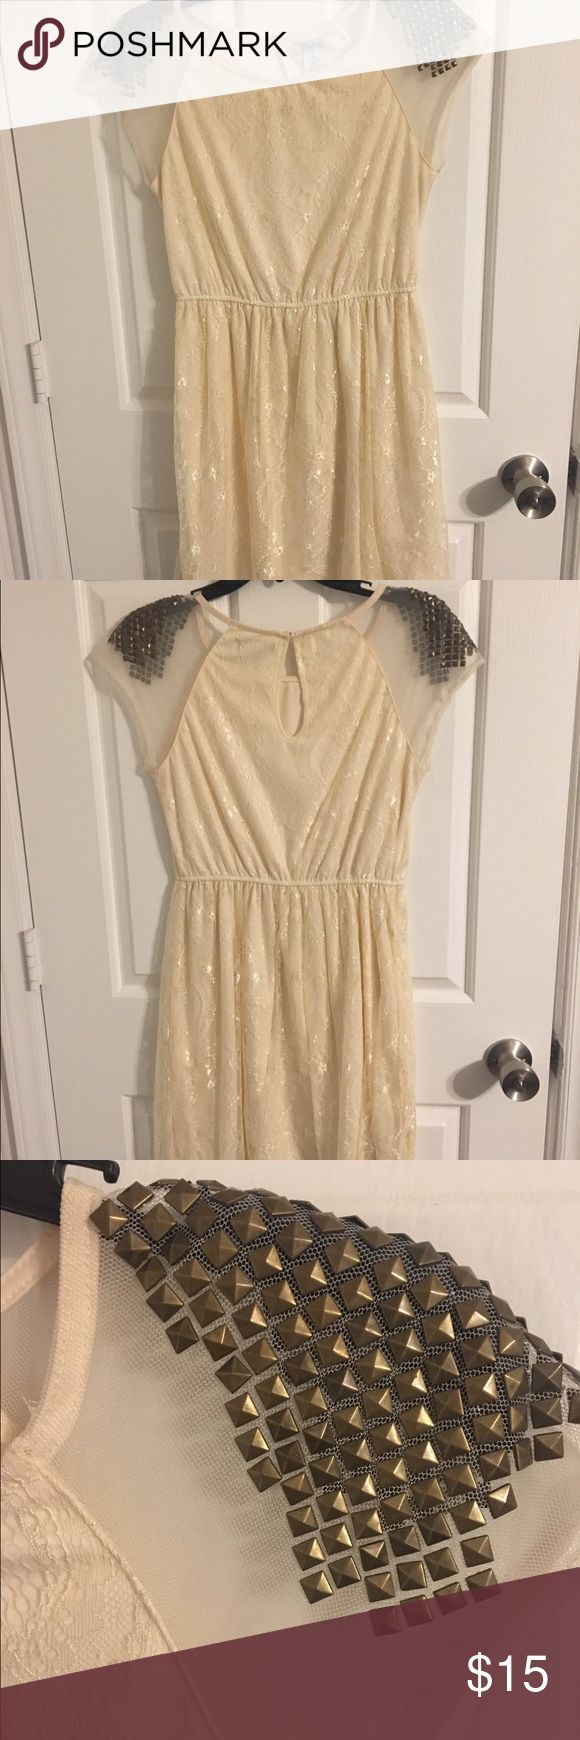 Cream Mini Dress Cream lacy mini dress. Shear shoulders with bronze embellishments. Worn once, great condition. Such an adorable dress; I love it! Pinky Dresses Mini